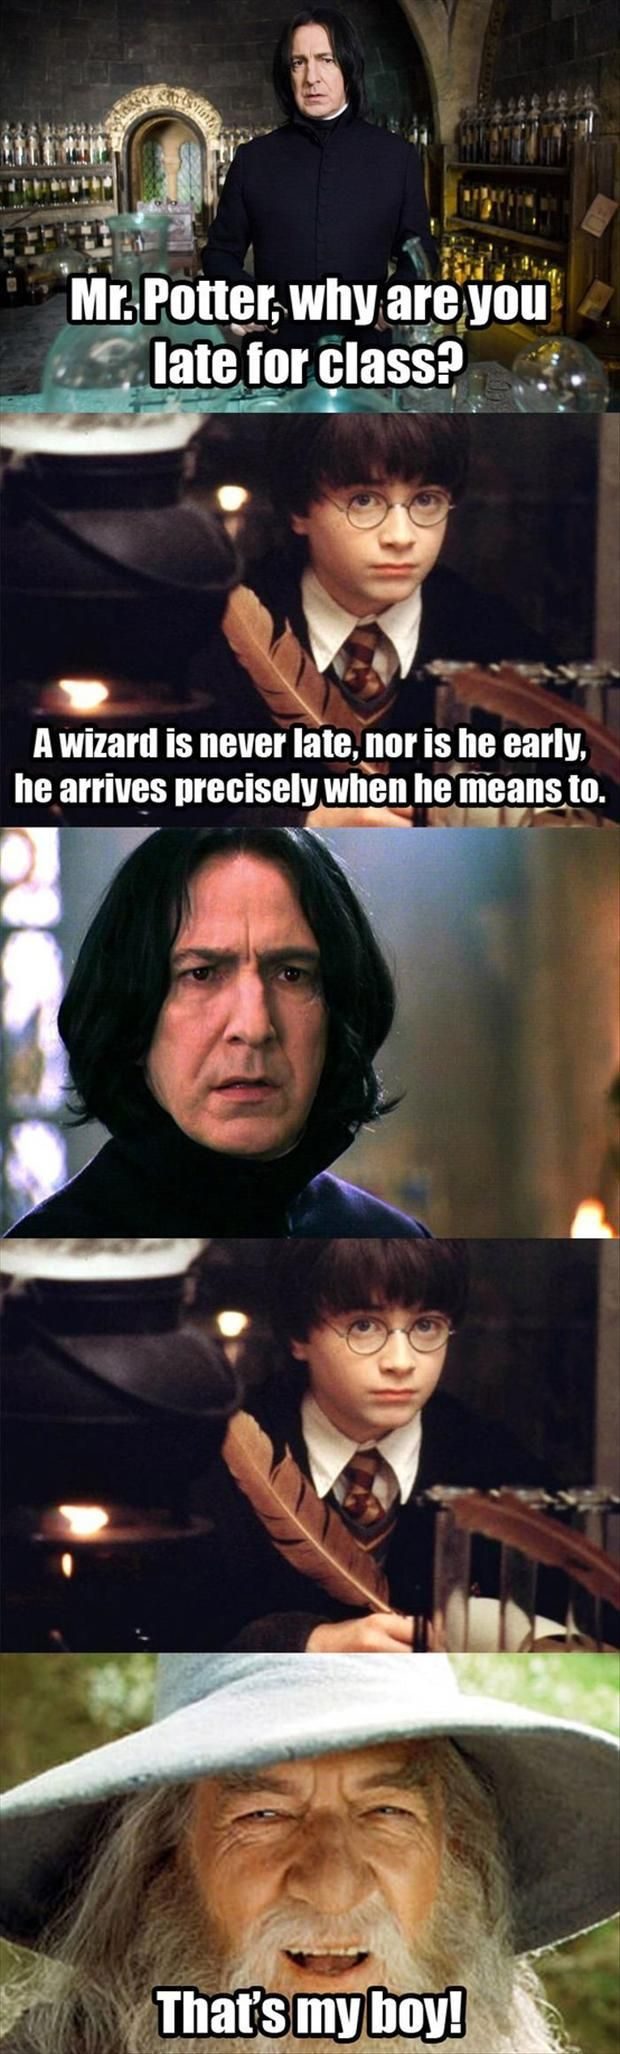 harry potter + lord of the rings